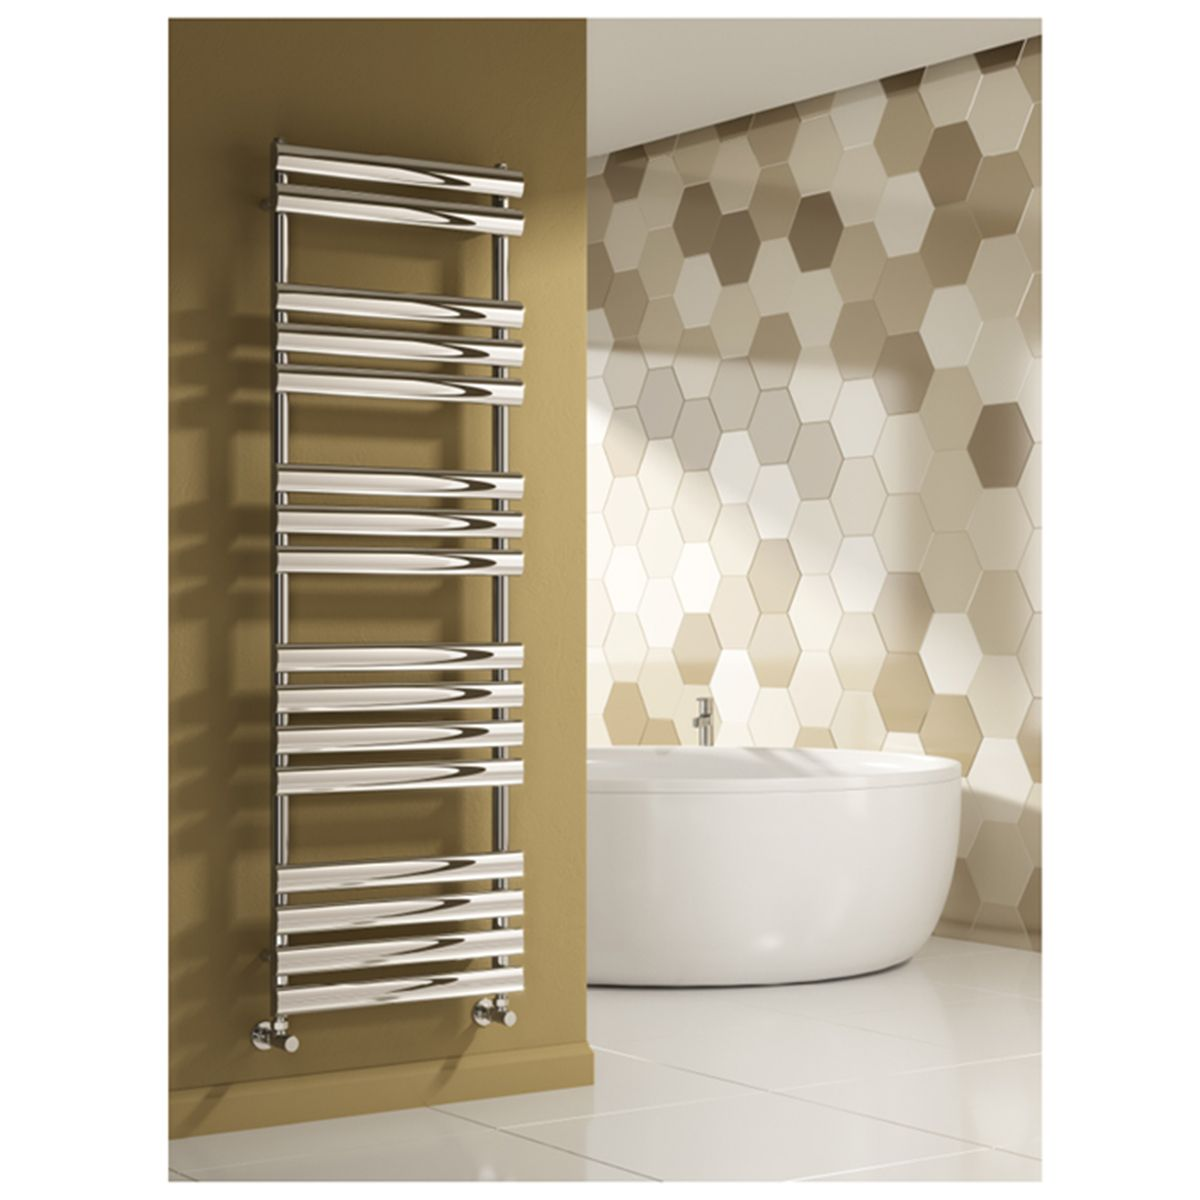 Reina Arbori Steel Chrome Designer Towel Radiator